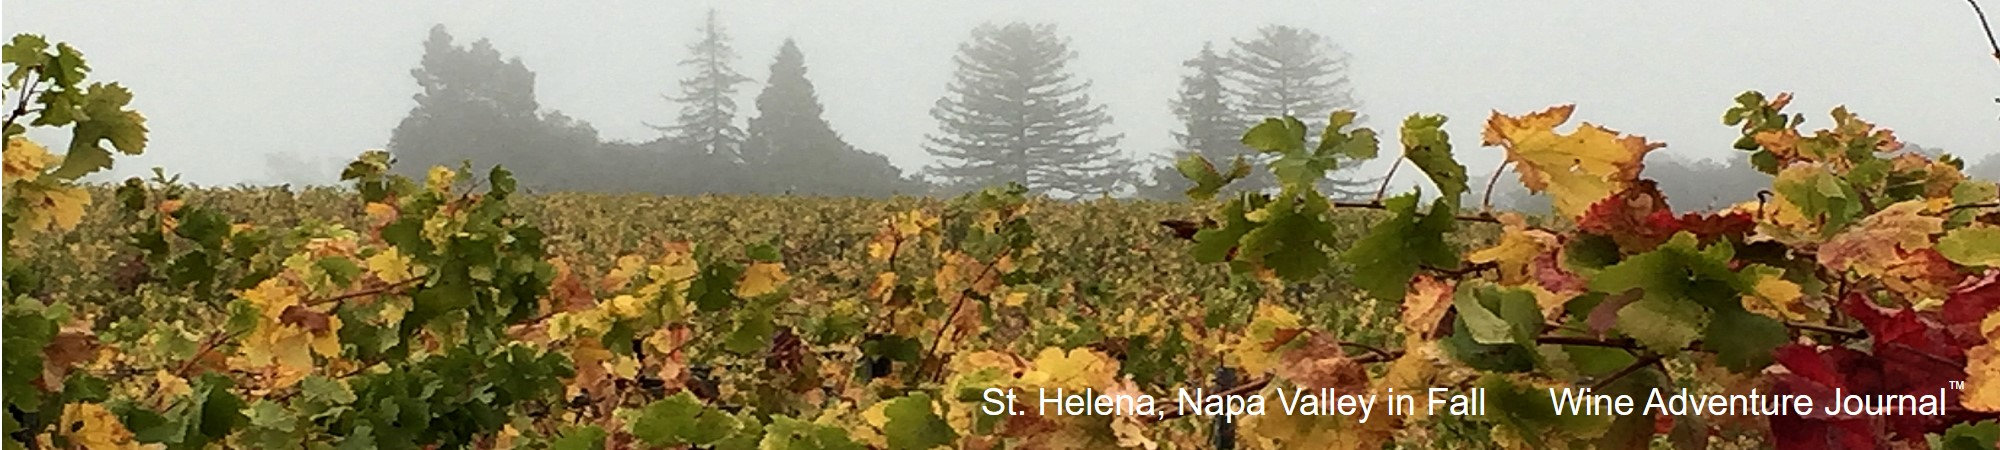 Wine Adventure Journal website header St Helena 2021 01 08